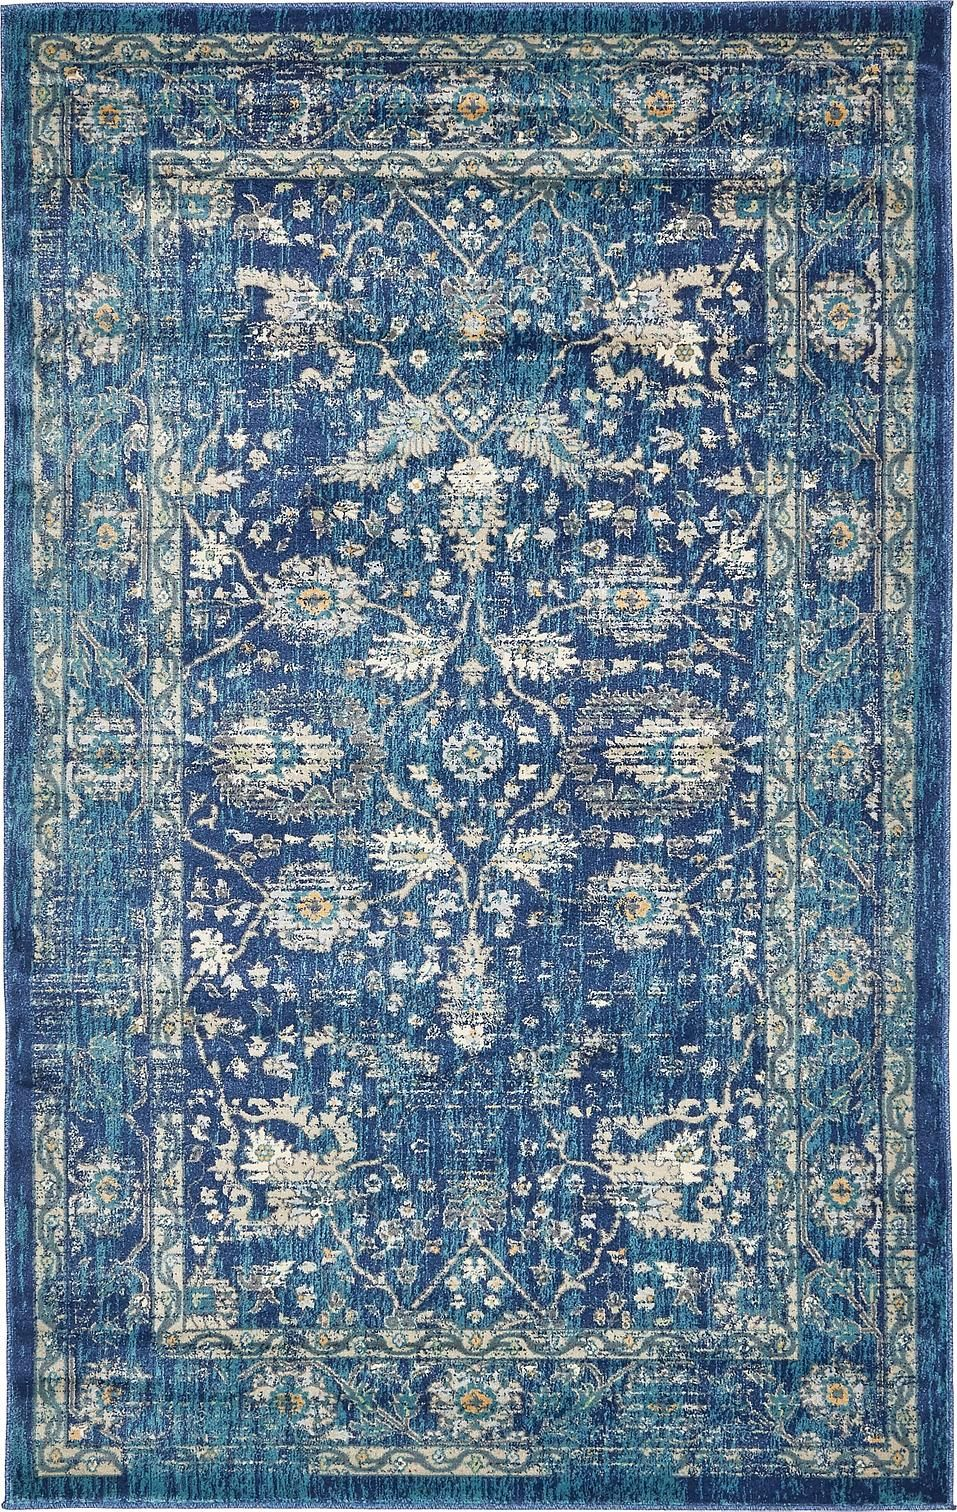 design stunning rug net surripui images pictures outstanding bright blue teal area ideas